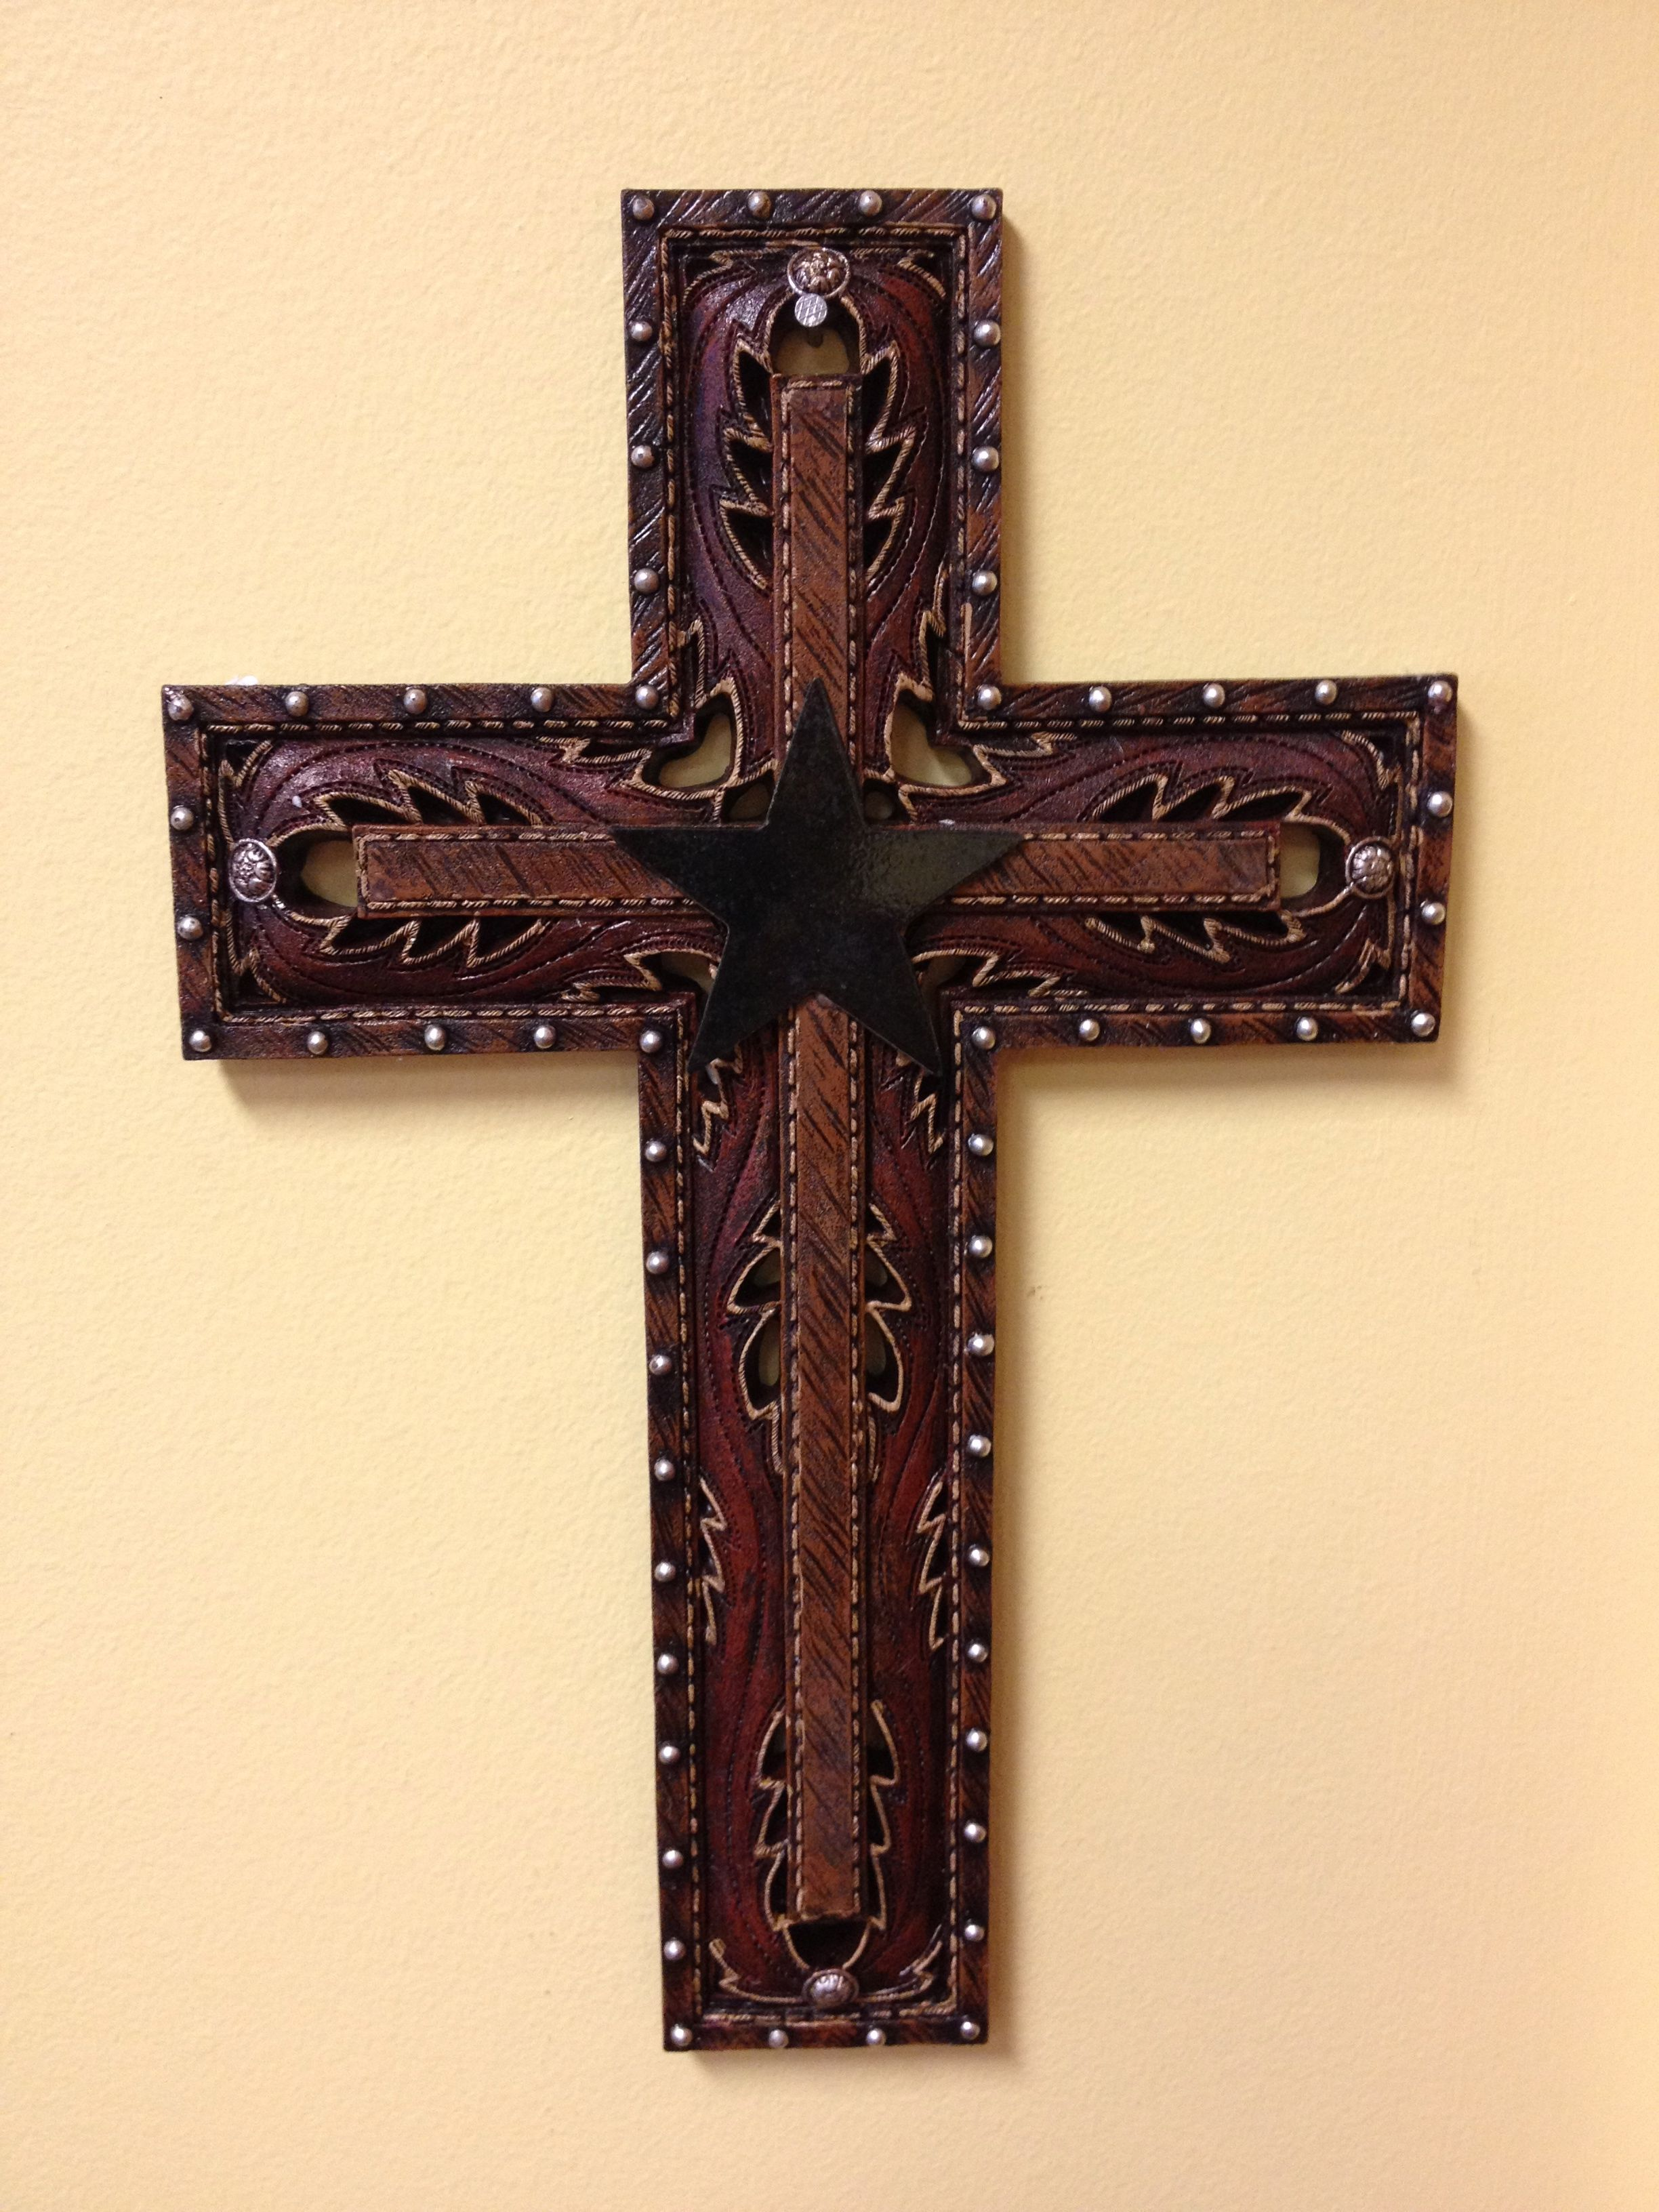 Rustic ceramic, metal cross. | Wall Decor | Pinterest | Rustic ceramics